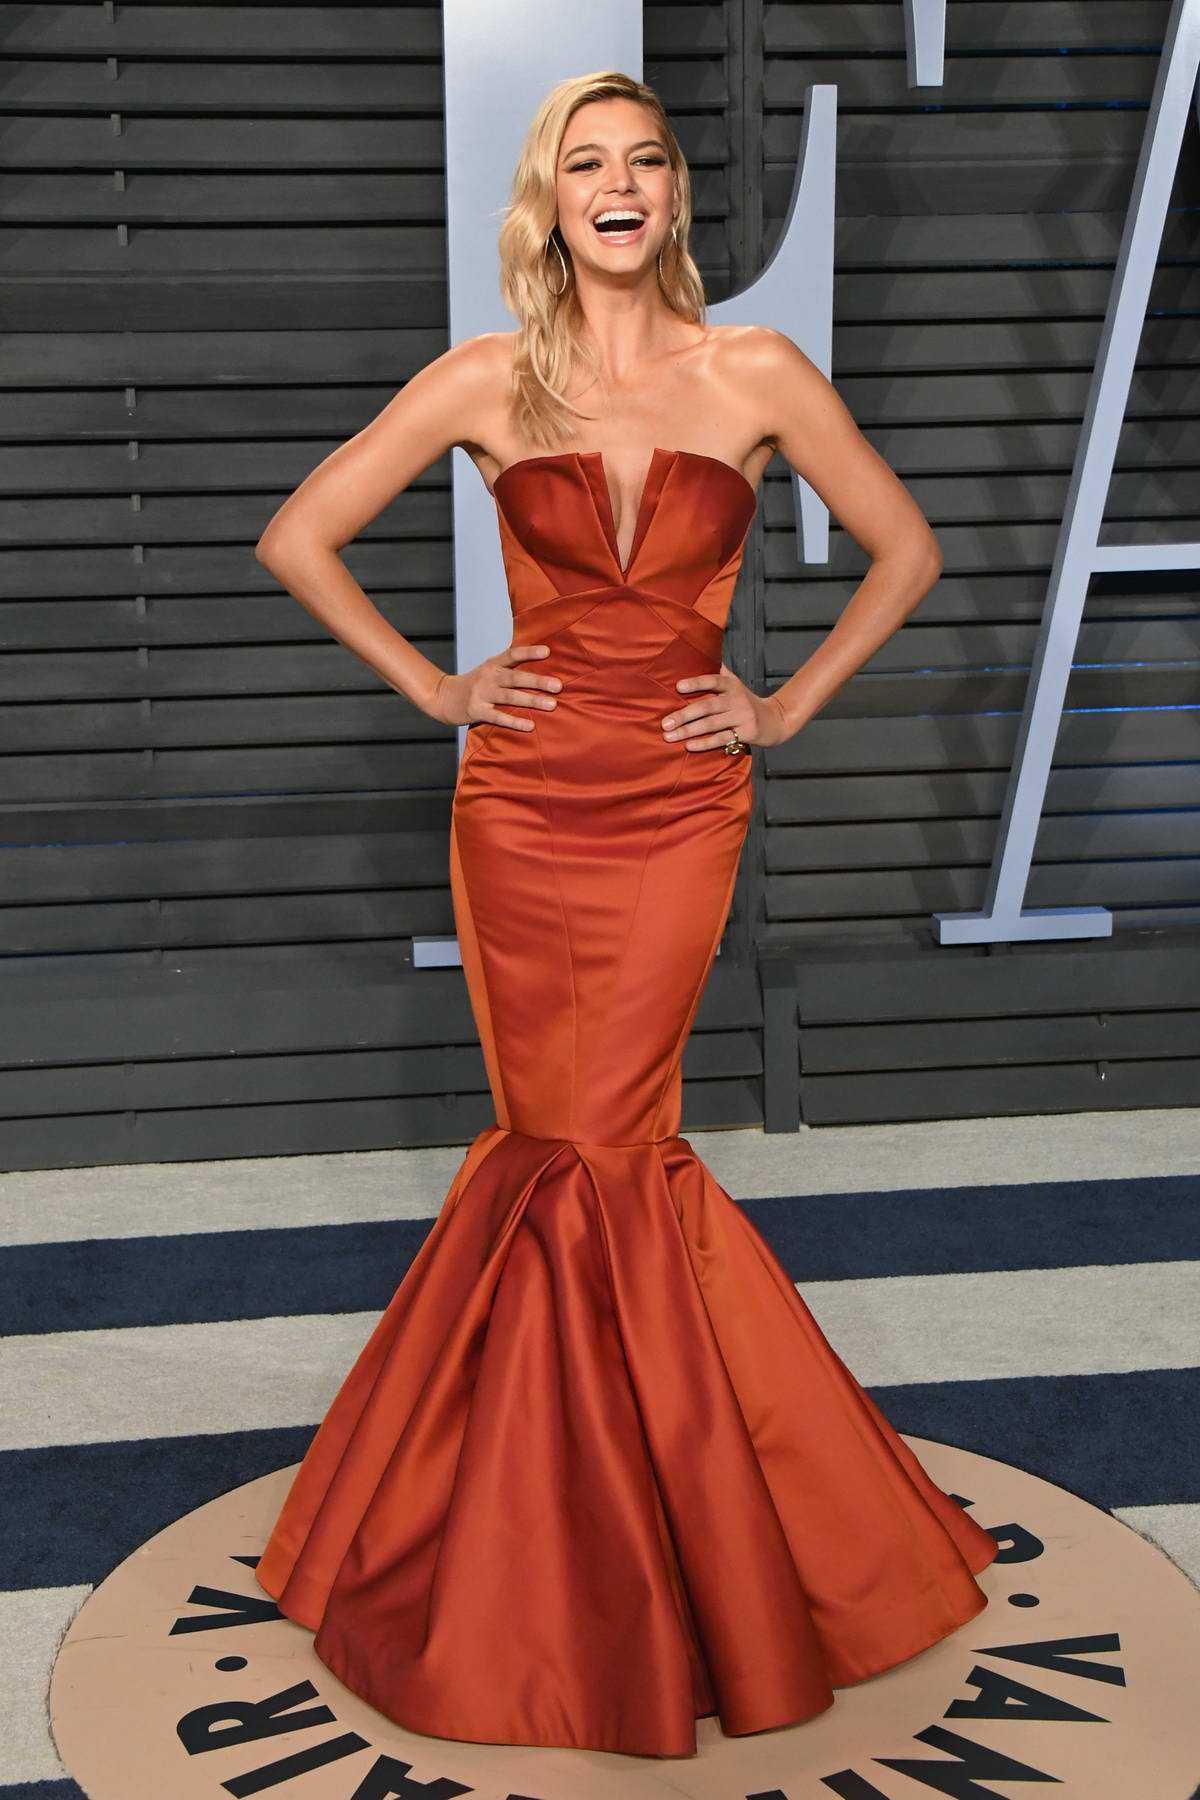 Kelly Rohrbach attends 2018 Vanity Fair Oscar Party at the Wallis Annenberg Center for the Performing Arts in Beverly Hills, Los Angeles